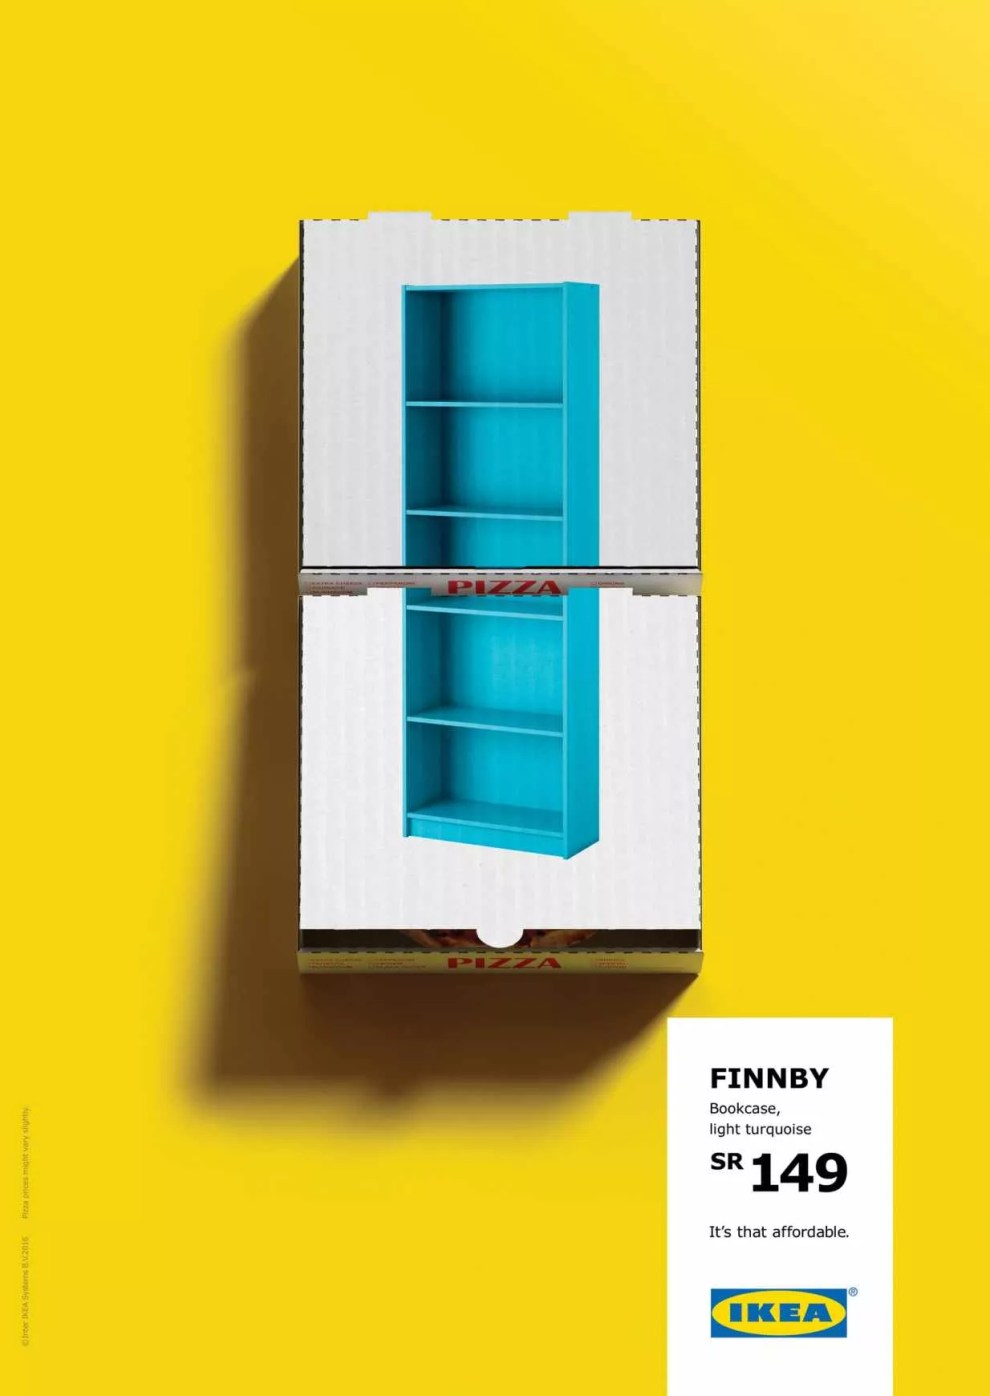 ikea-ads-clever-affordability-3